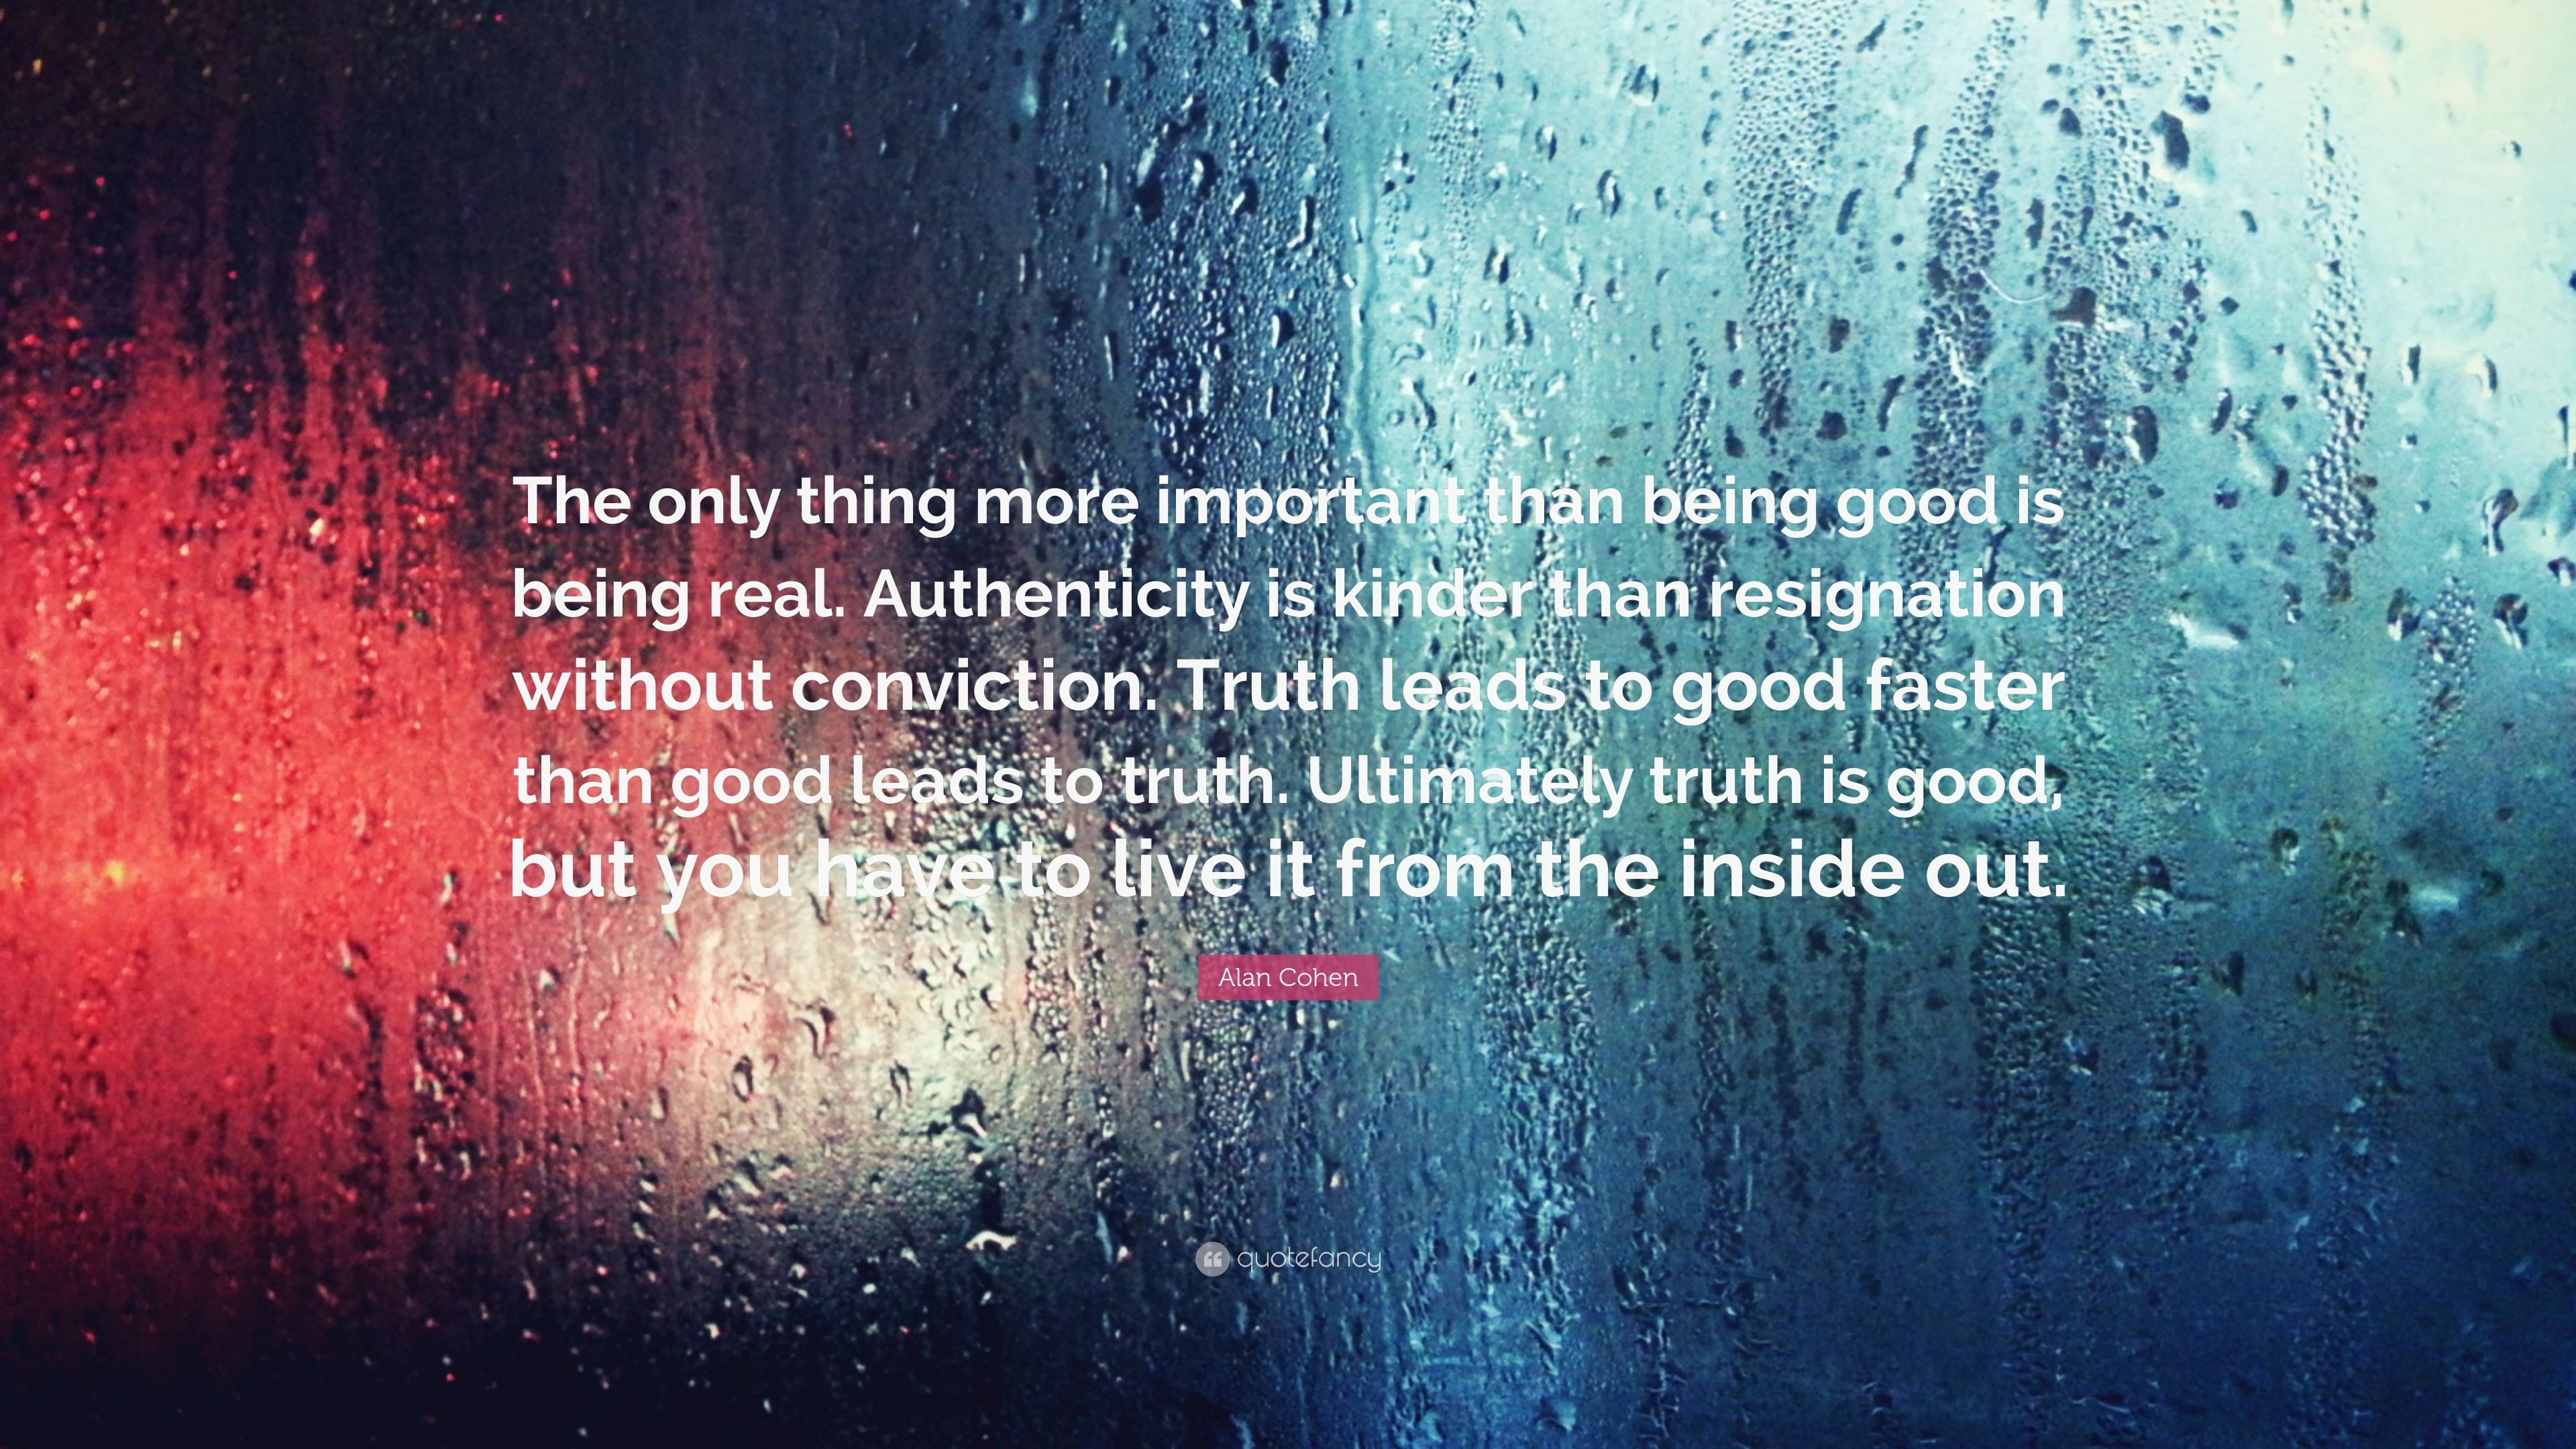 Truth is more important than good news